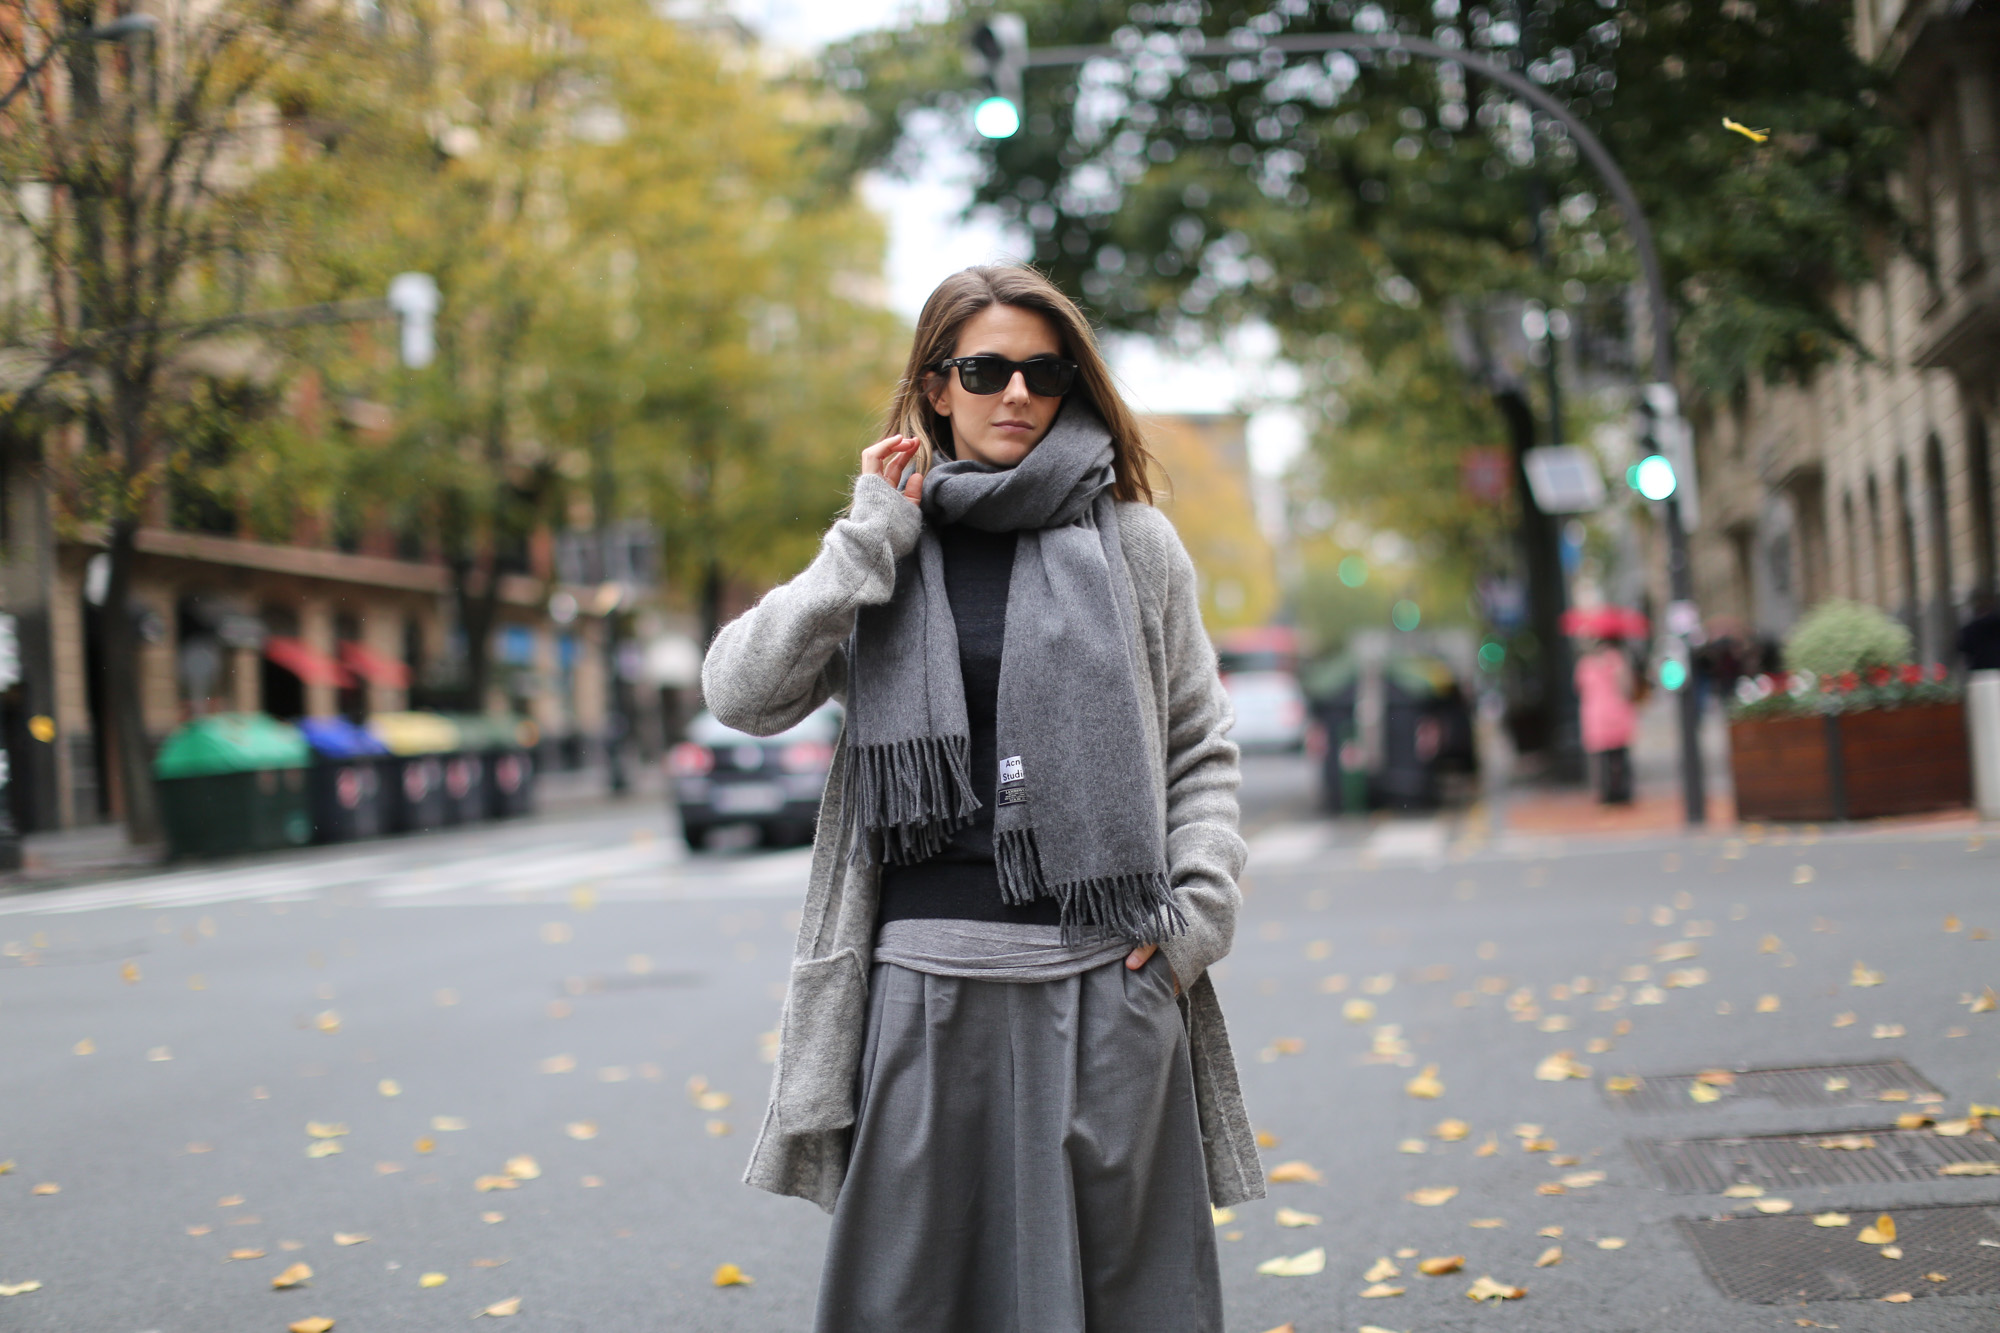 Clochet-streetstyle-all-grey-suiteblanco-culottes-h&m-trend-angora-cardigan-mango-pointy-loafers-3